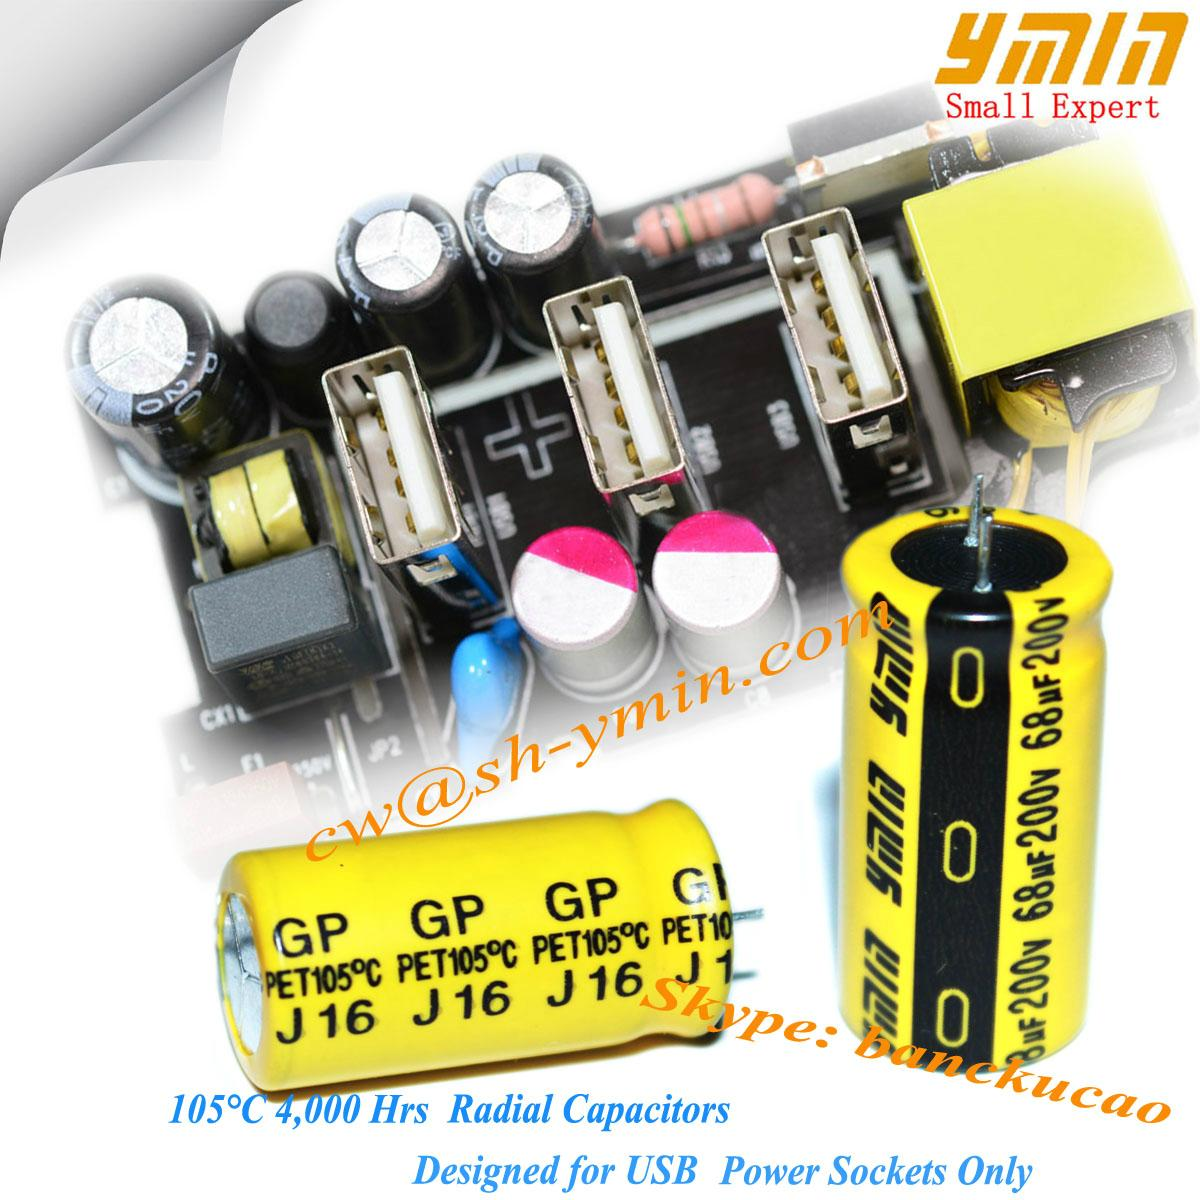 High stability GP aluminum electrolytic capacitor for portable USB chargers 1